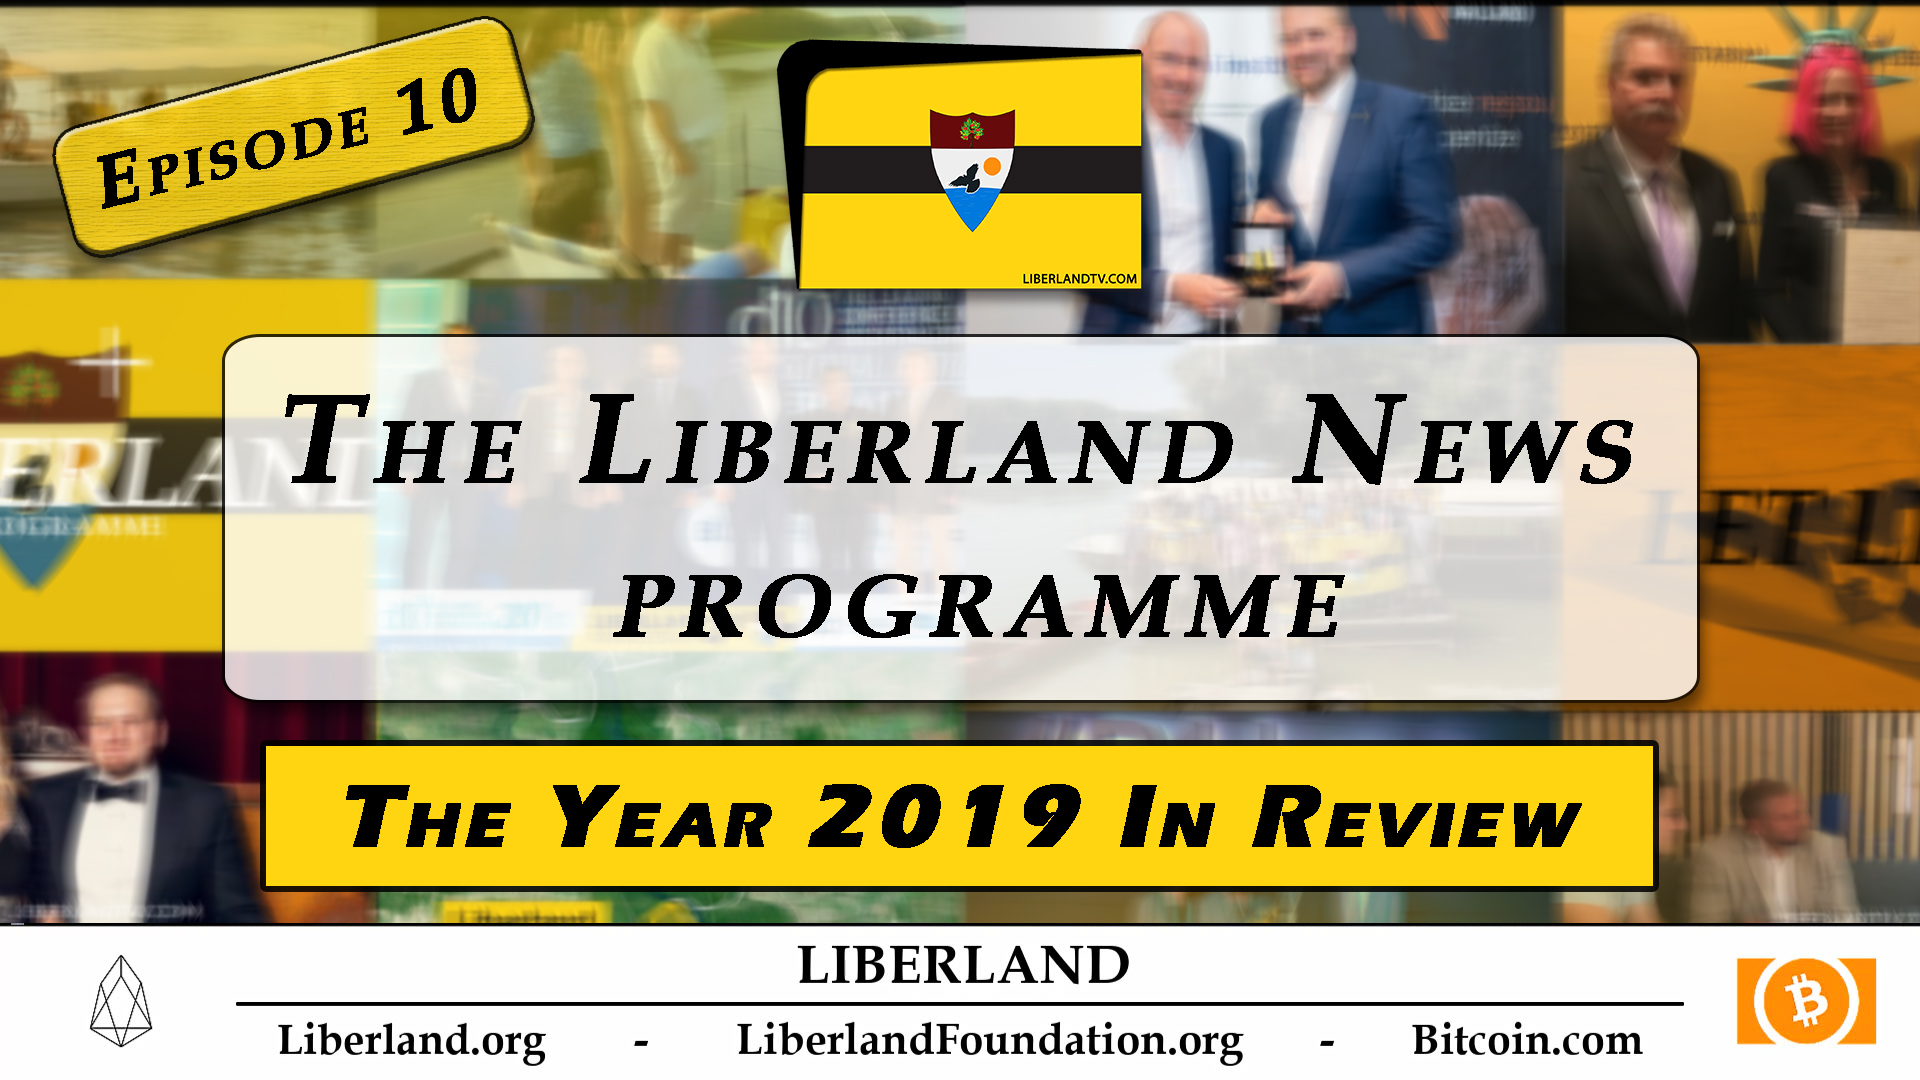 Liberland News Programme Episode 10 The Year 2019 in Review - Liberland TV bitcoin crypto blockchain